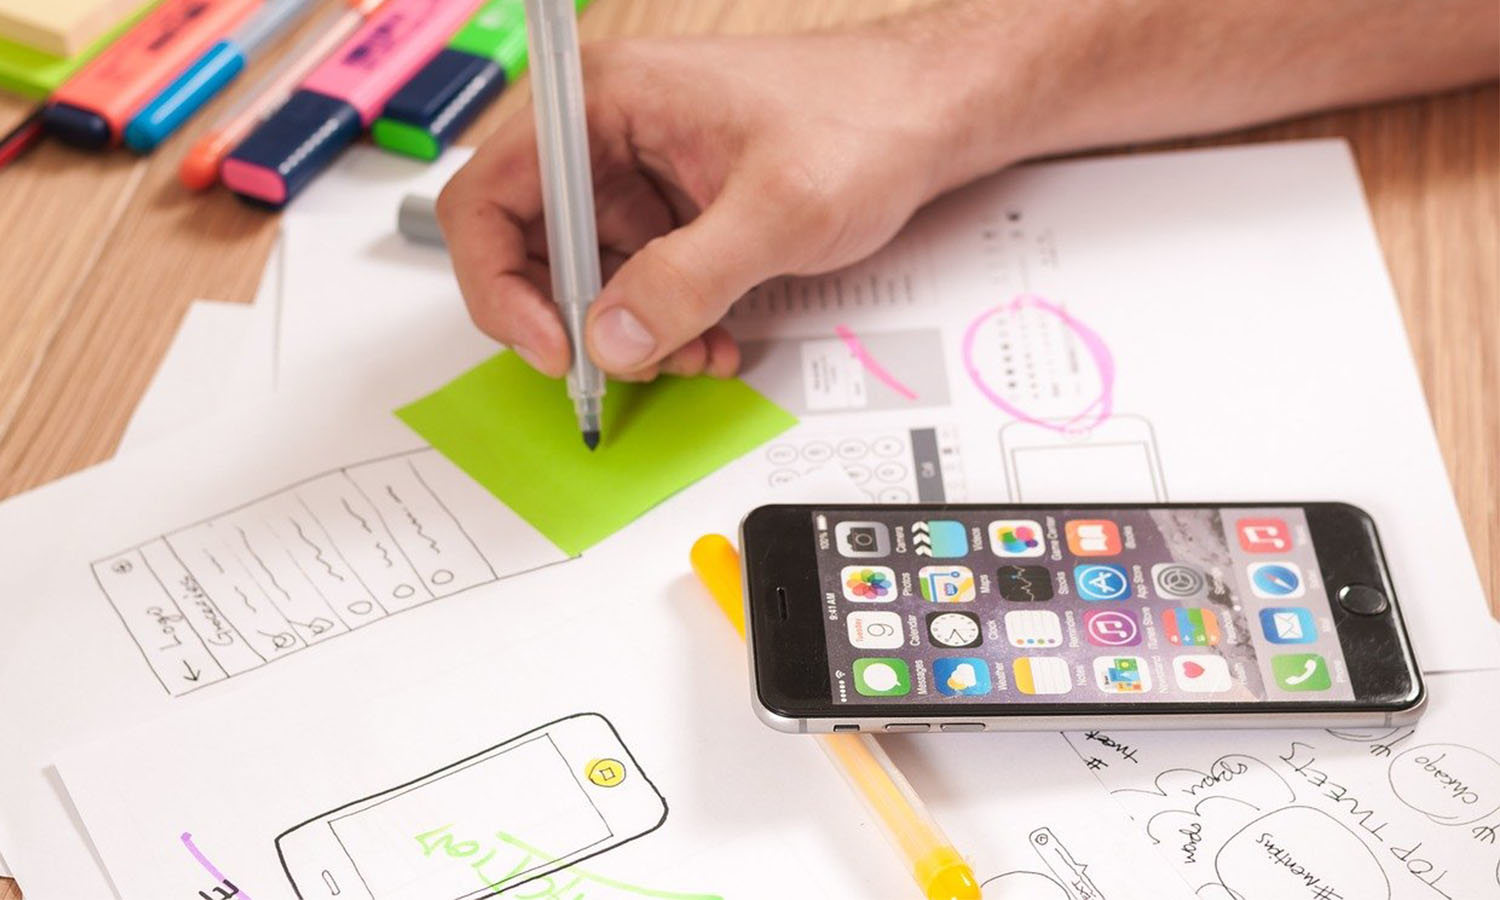 Why UI/UX Design is Very Important in Mobile App Development